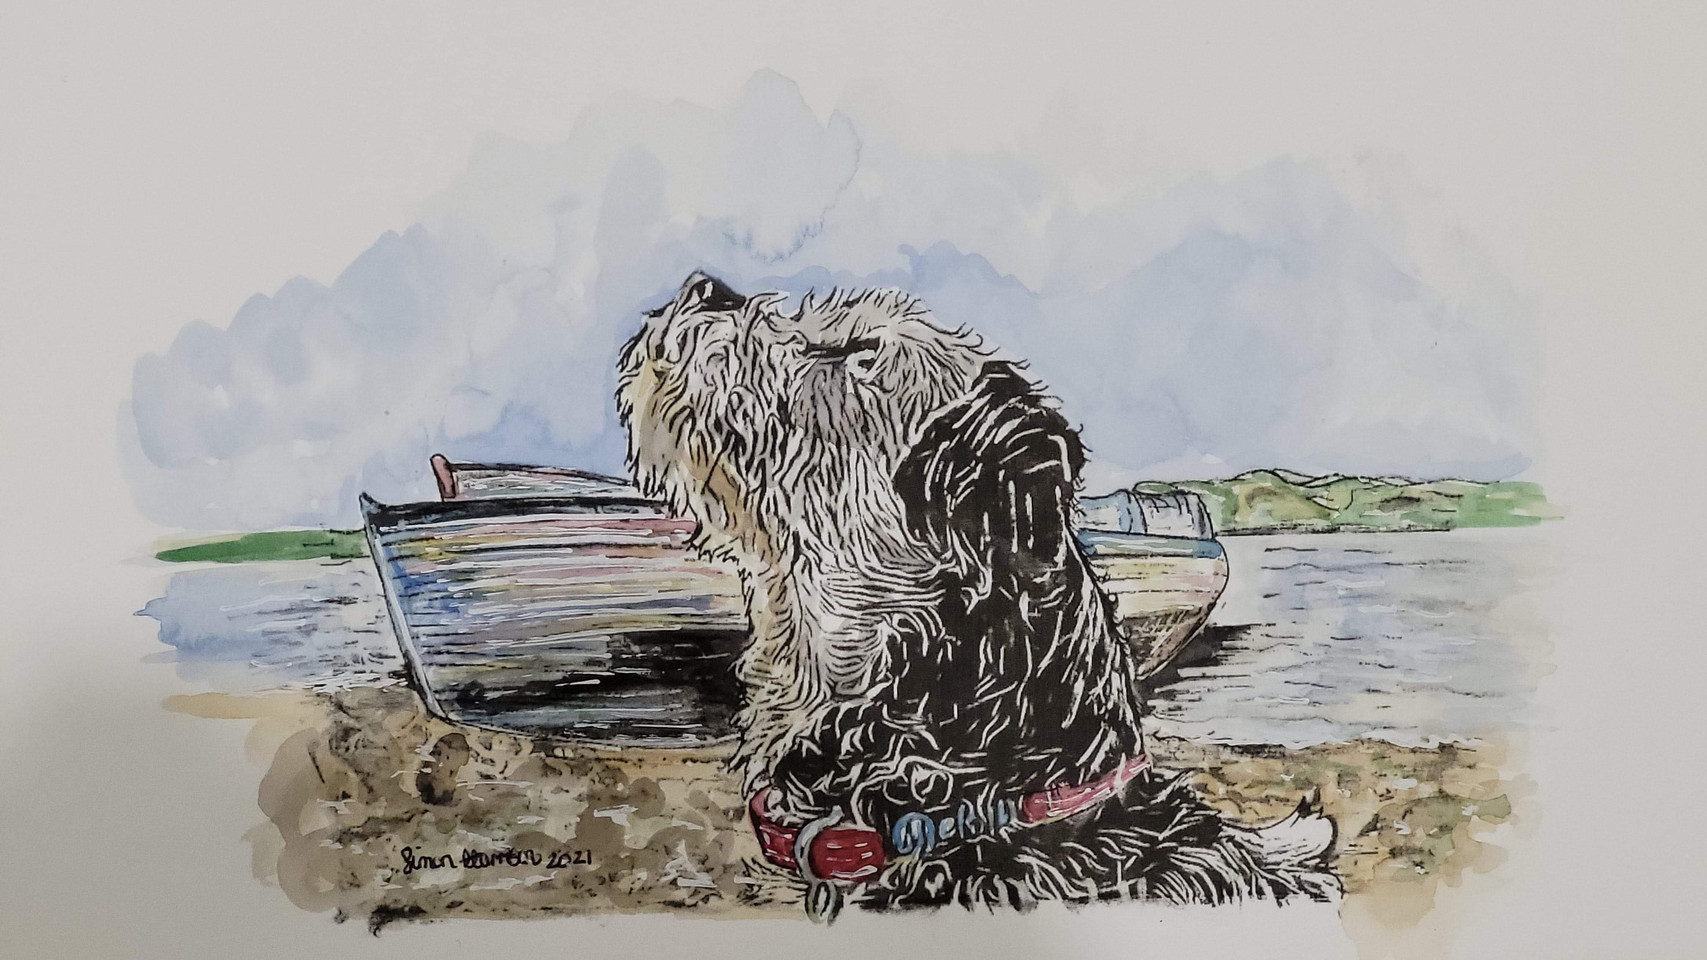 IMG_20210113_212411_36Dog by the river - ink and watercolour9.jpg